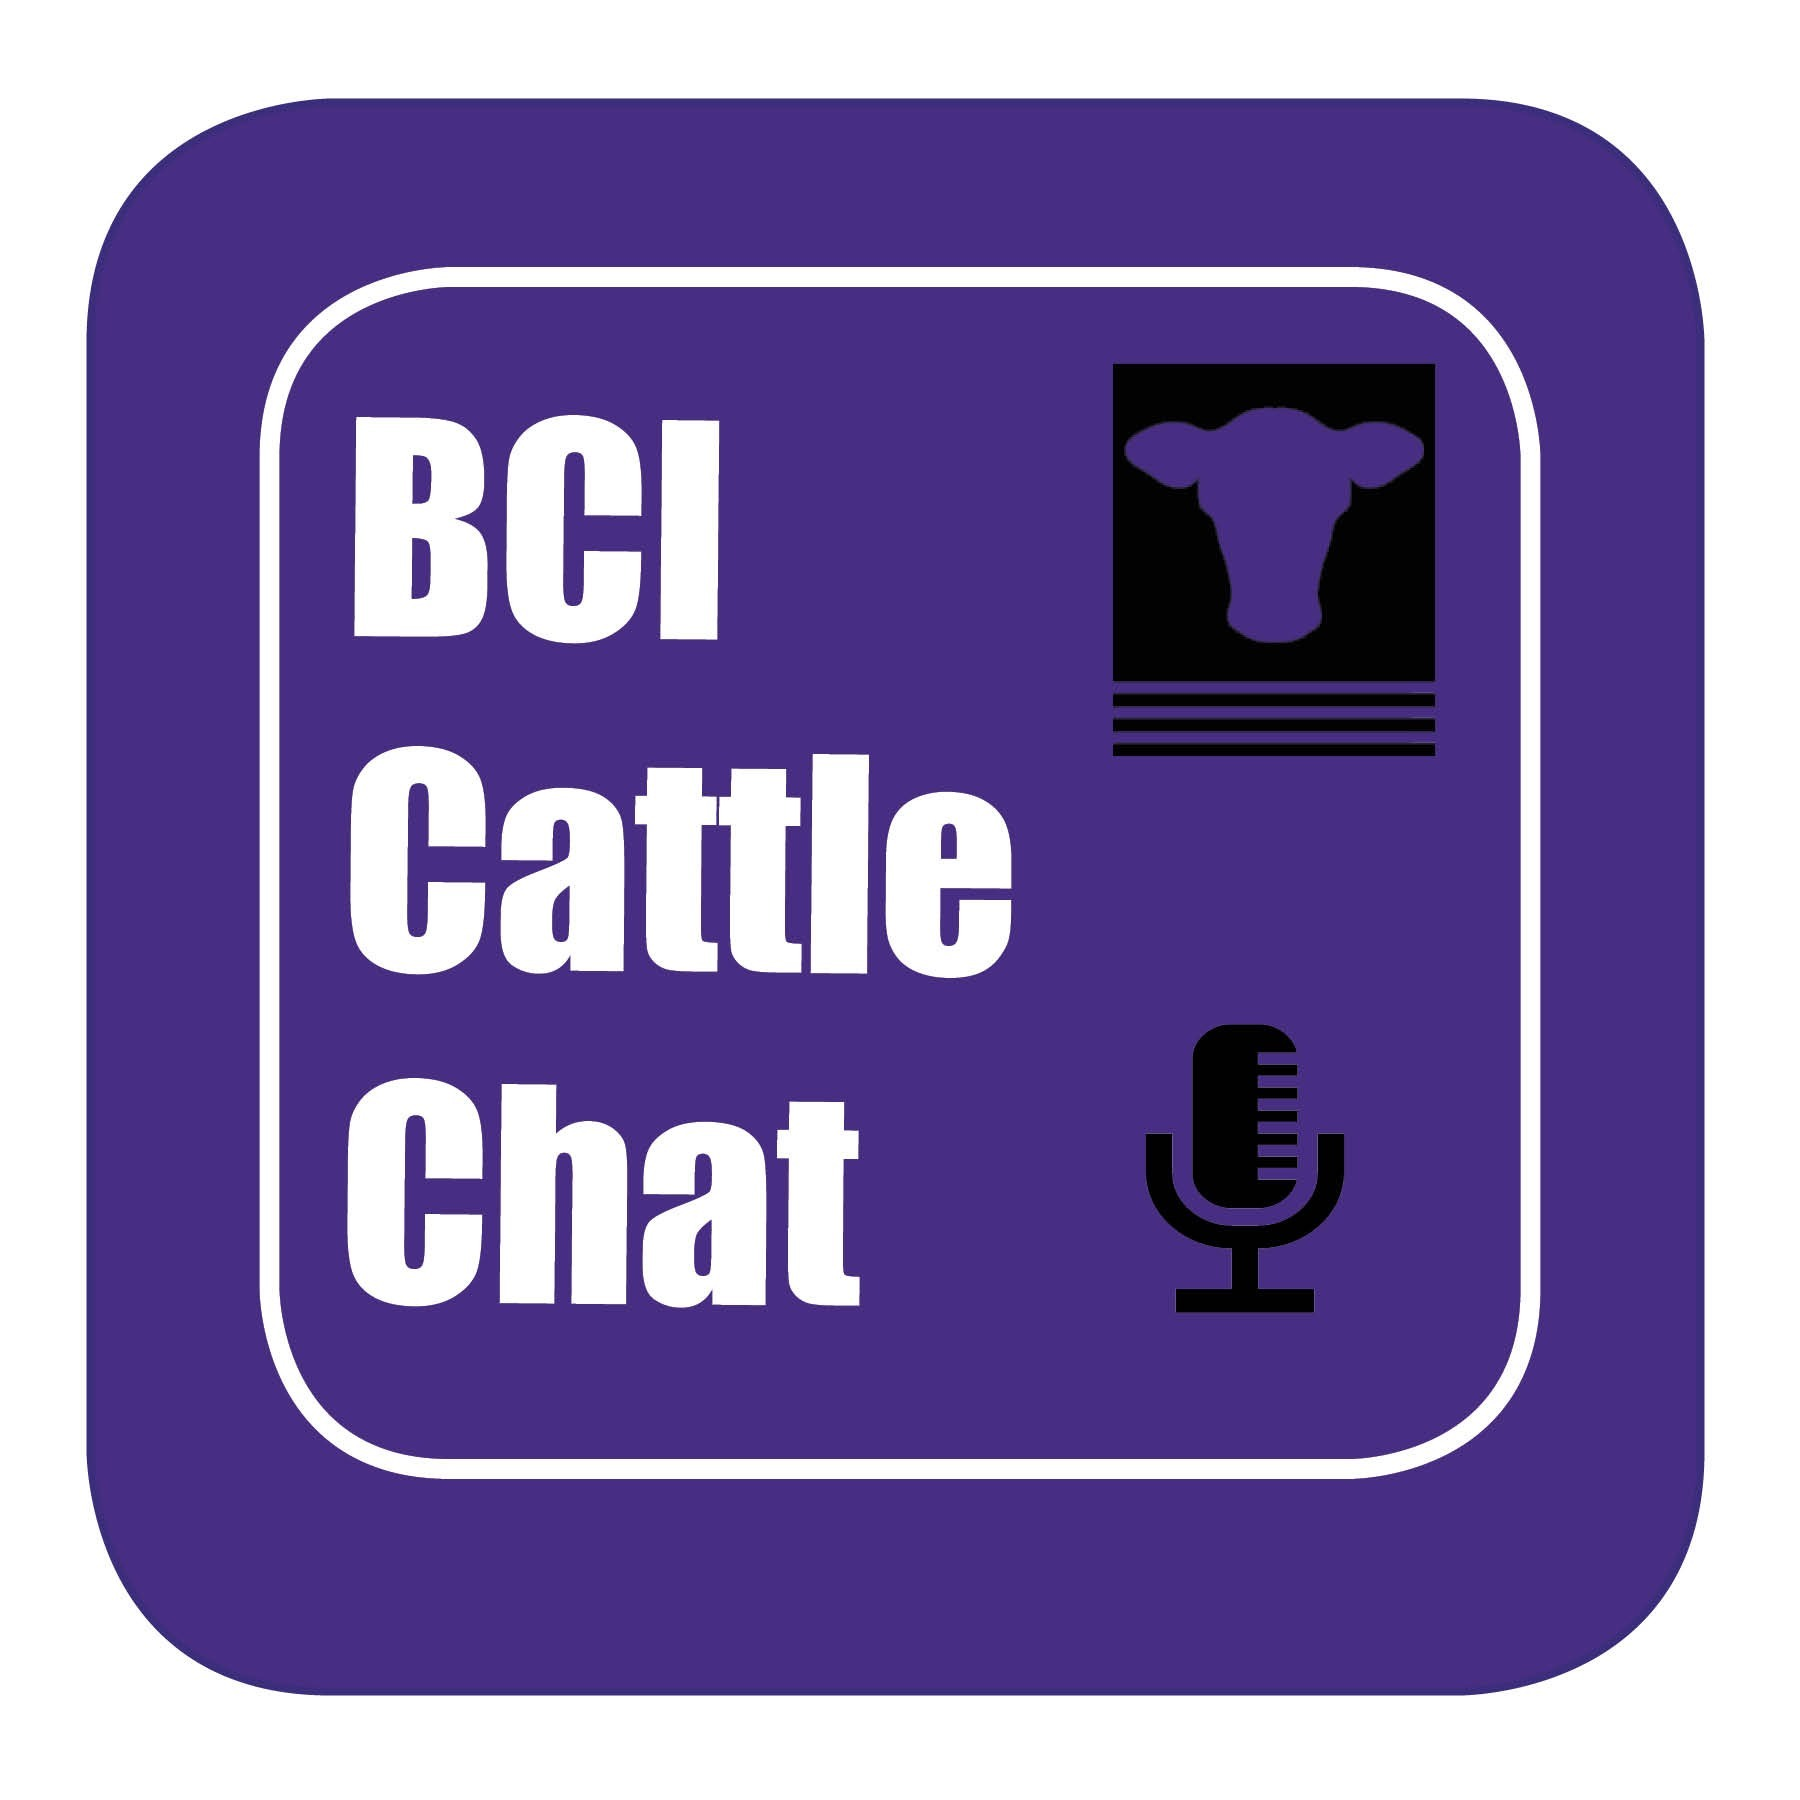 BCI Cattle Chat - Episode 54